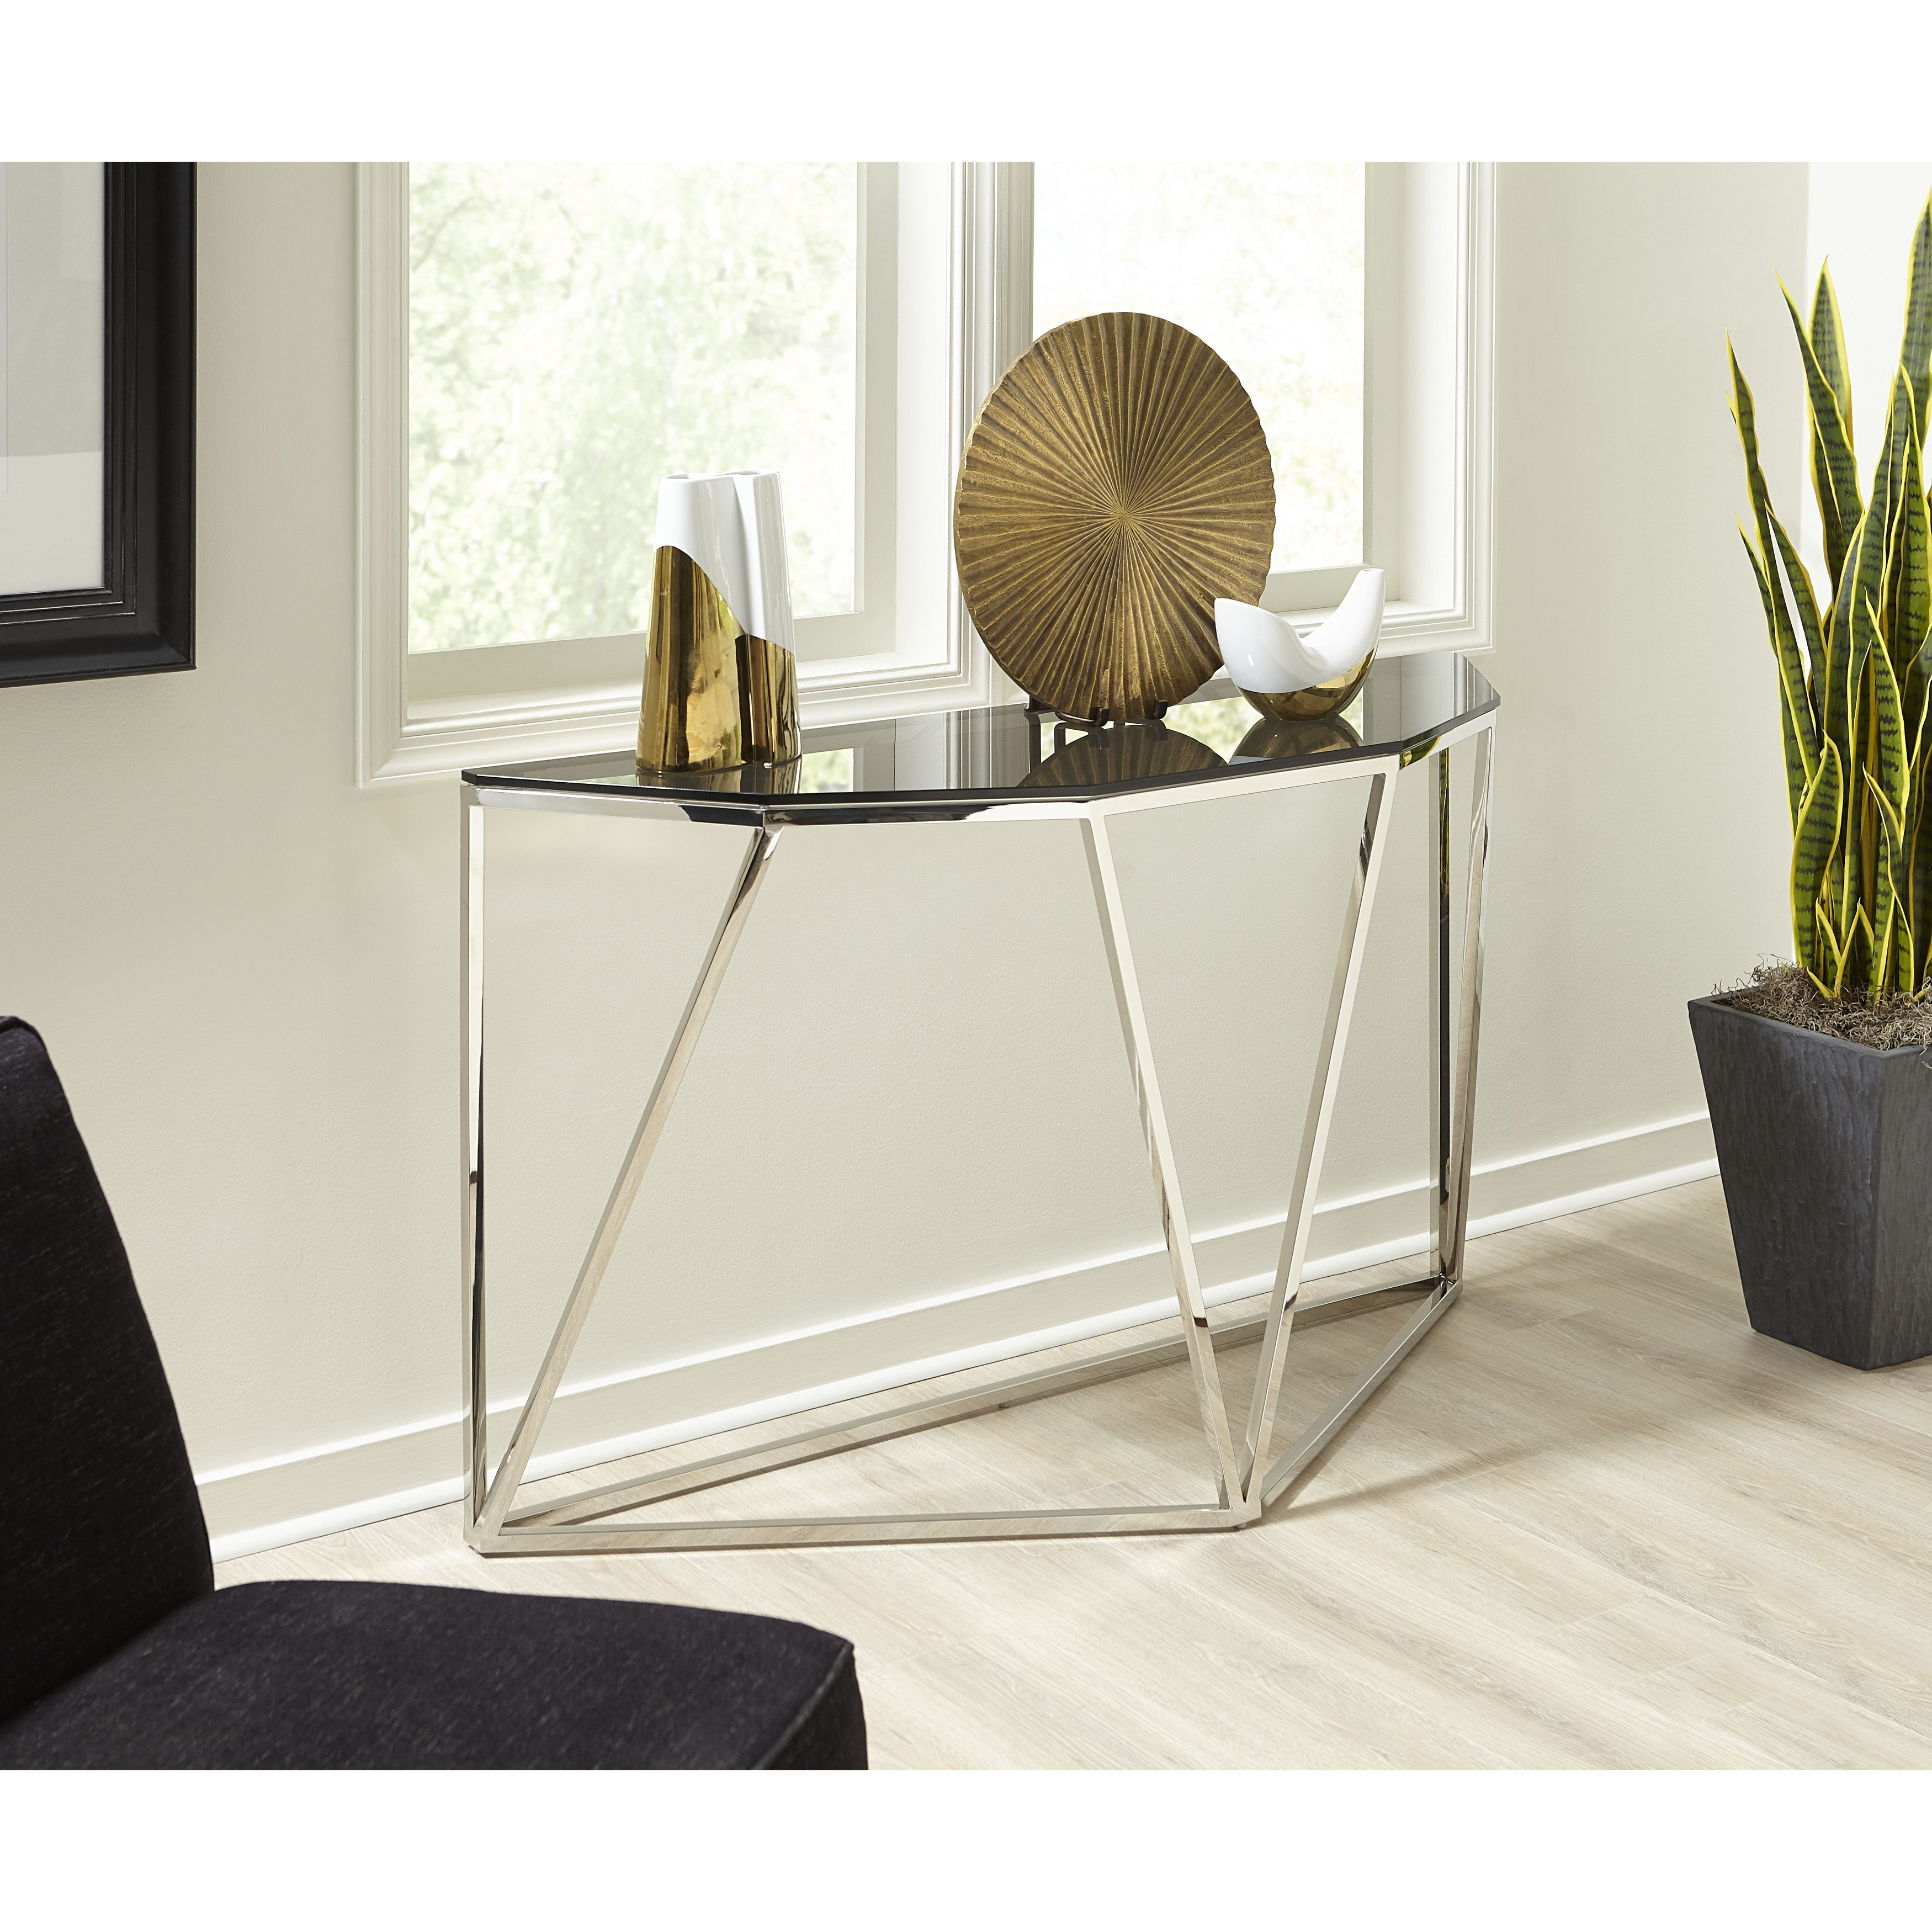 Aria Smoked Glass And Polished Stainless Steel Console Table Overstock 31987396